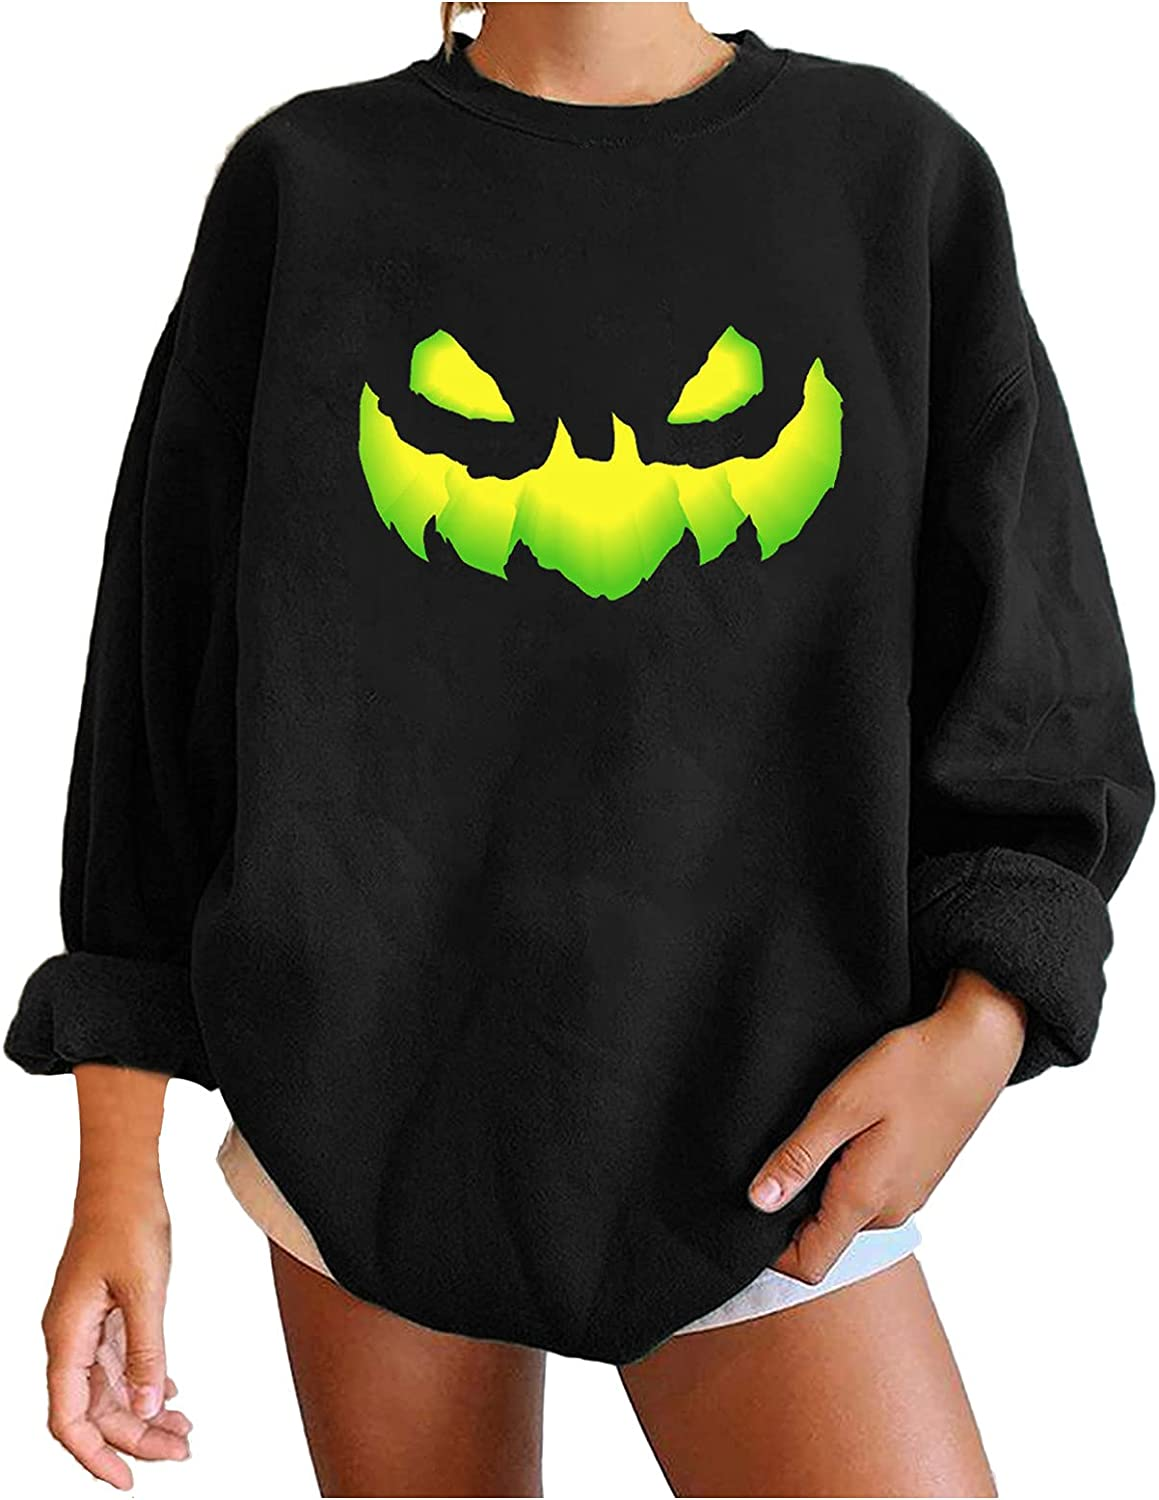 Women's Halloween Ranking TOP6 Pumpkin Face Graphic Pullover Limited time trial price Tops Lo Crewneck